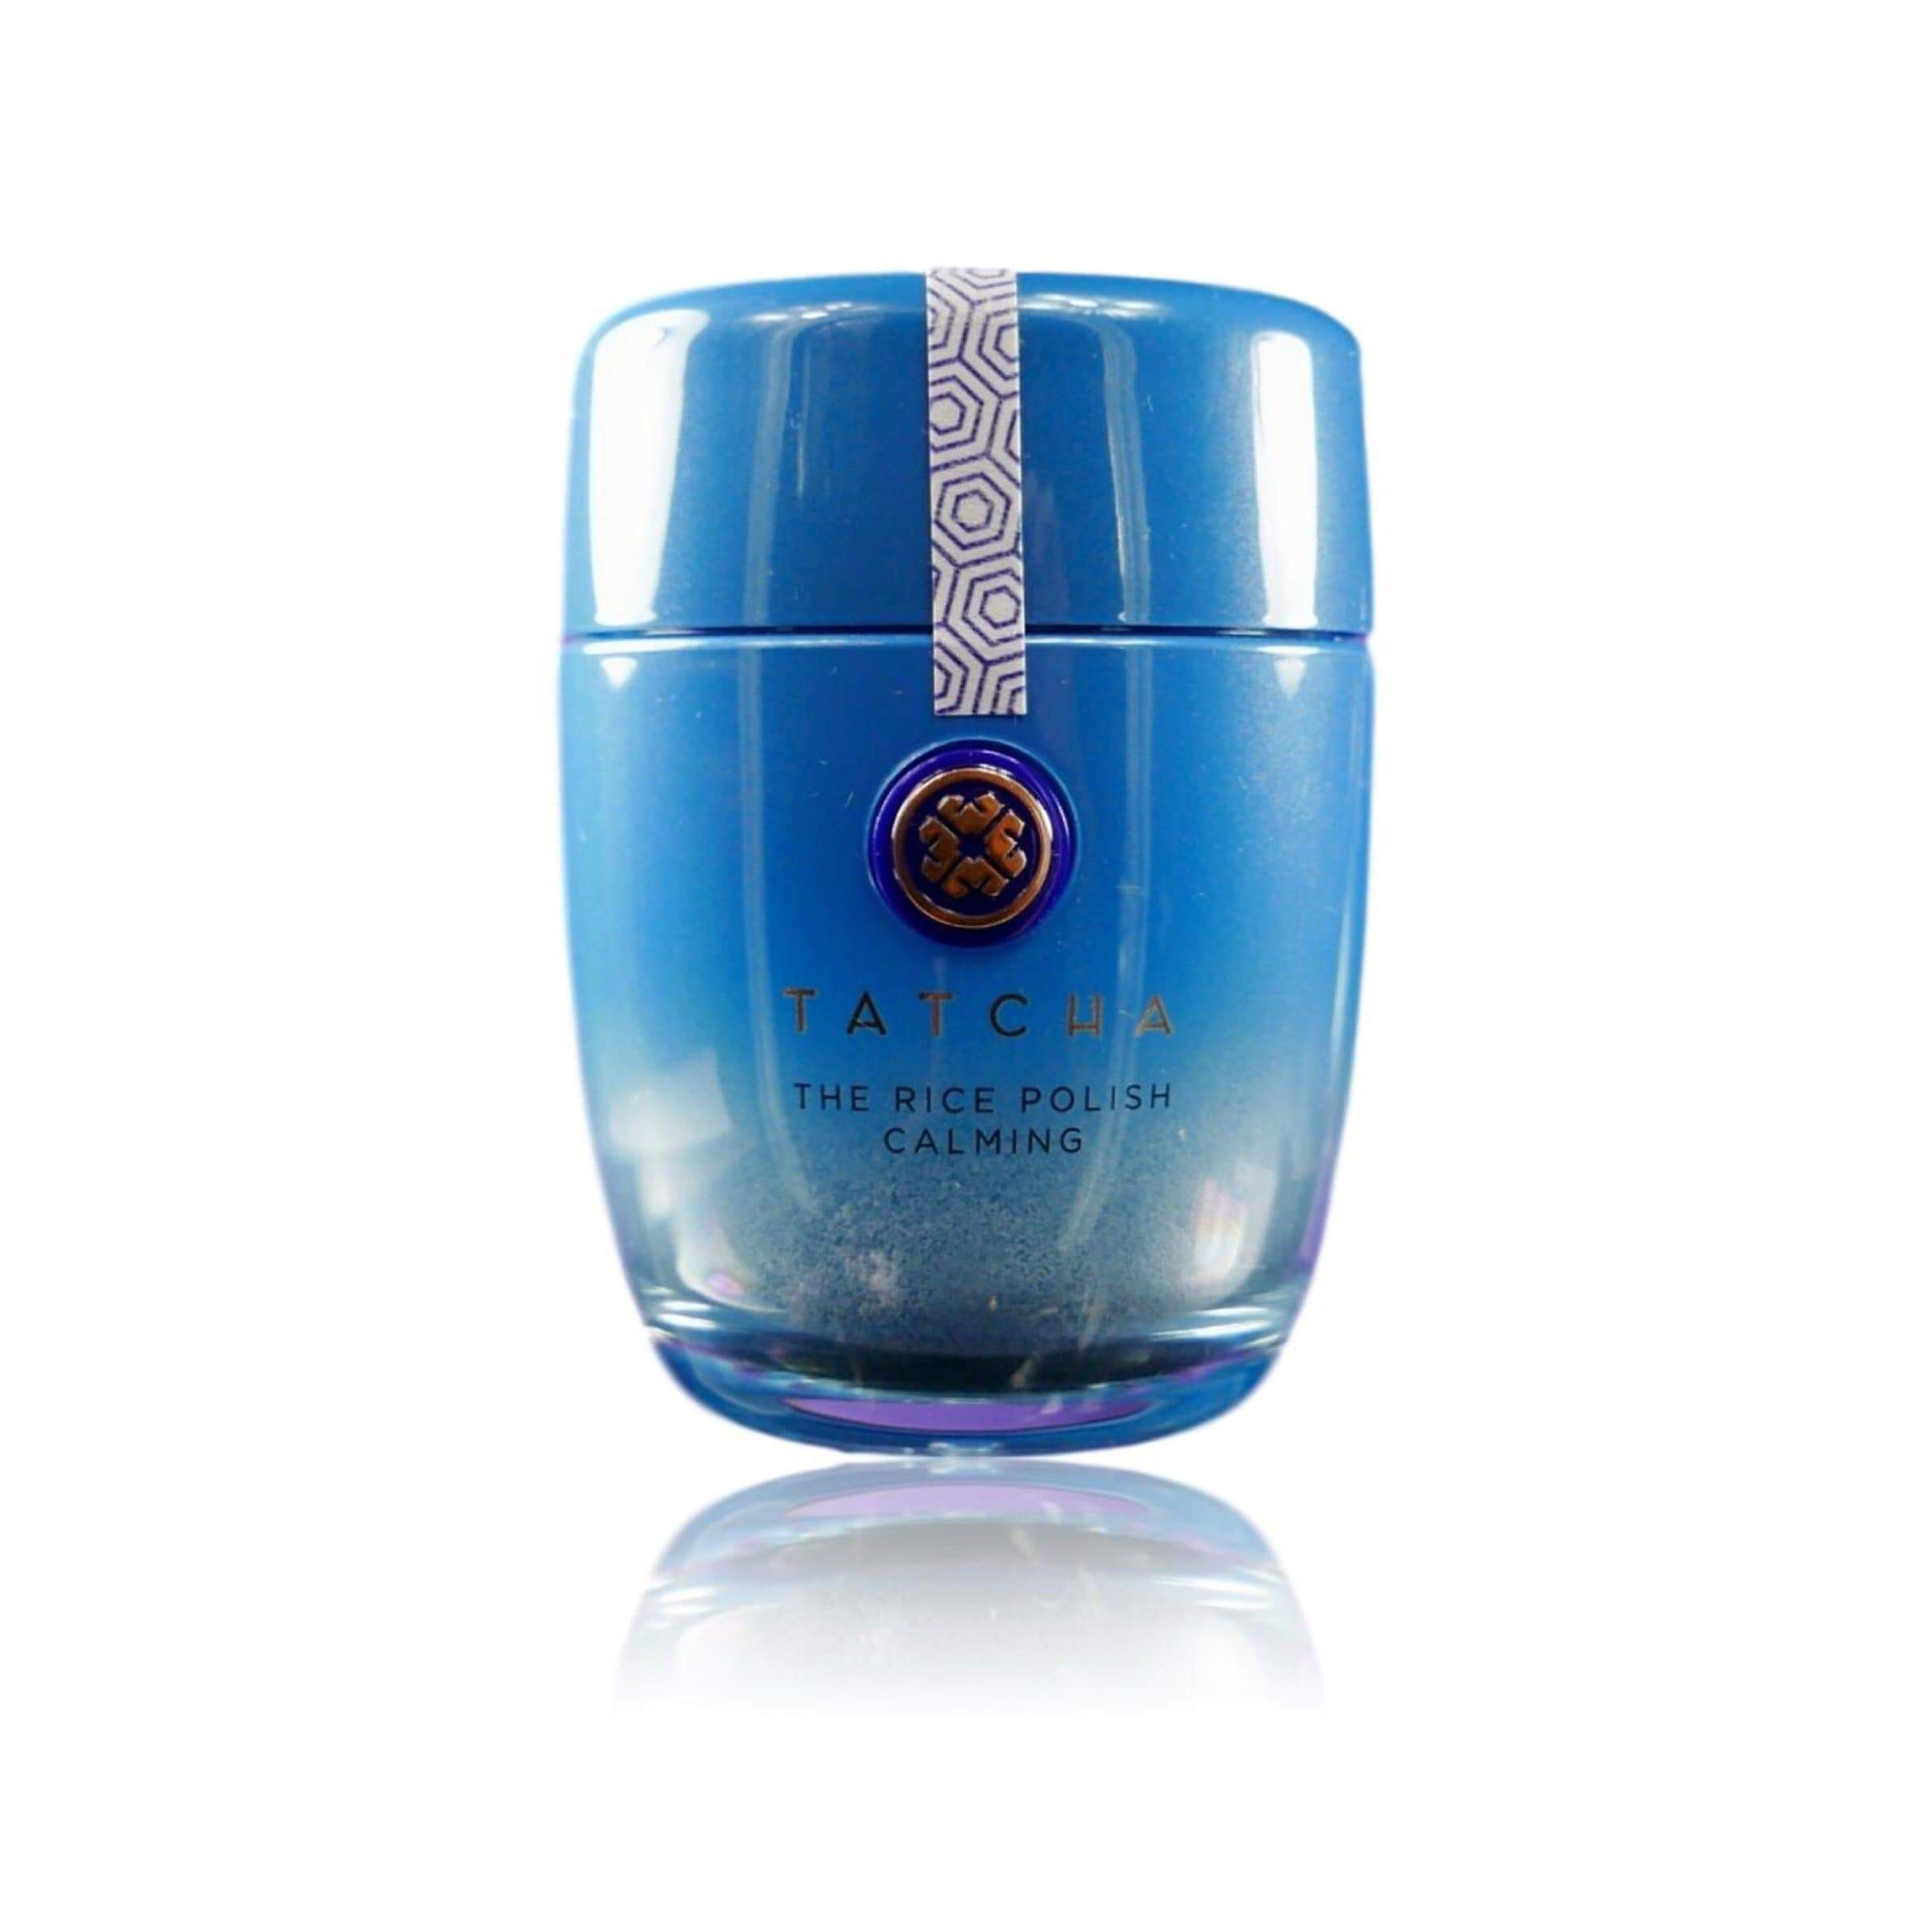 TATCHA The Rice Polish Calming Foaming Enzyme Powder - Sensitive, 60g | 2.1oz, Skin Care, London Loves Beauty